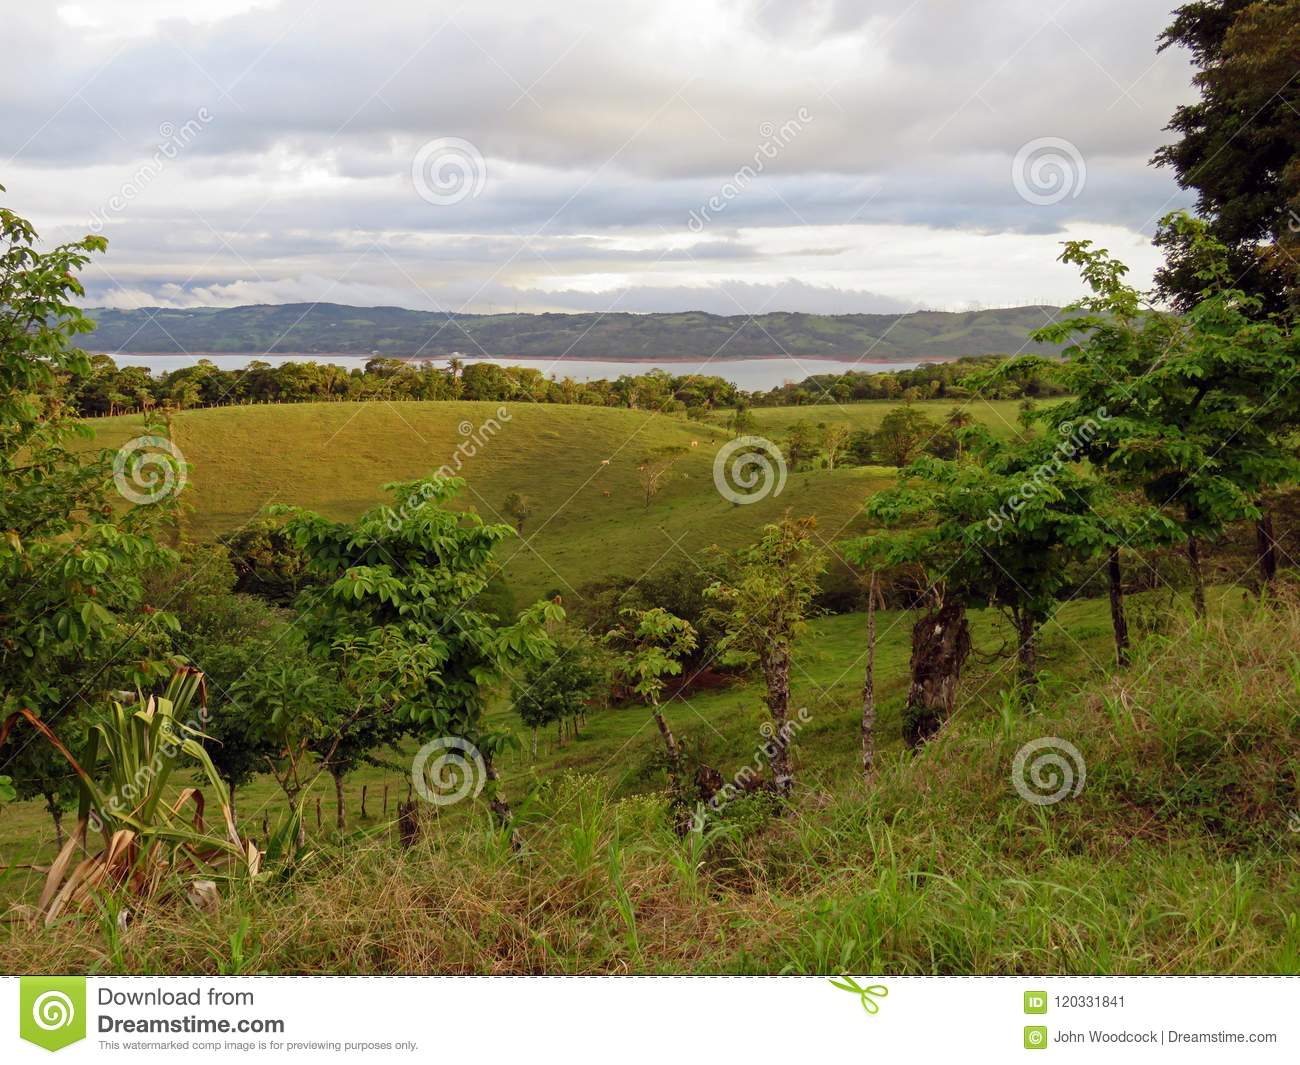 Landscape in Costa Rica with Lake Arenal in Background.